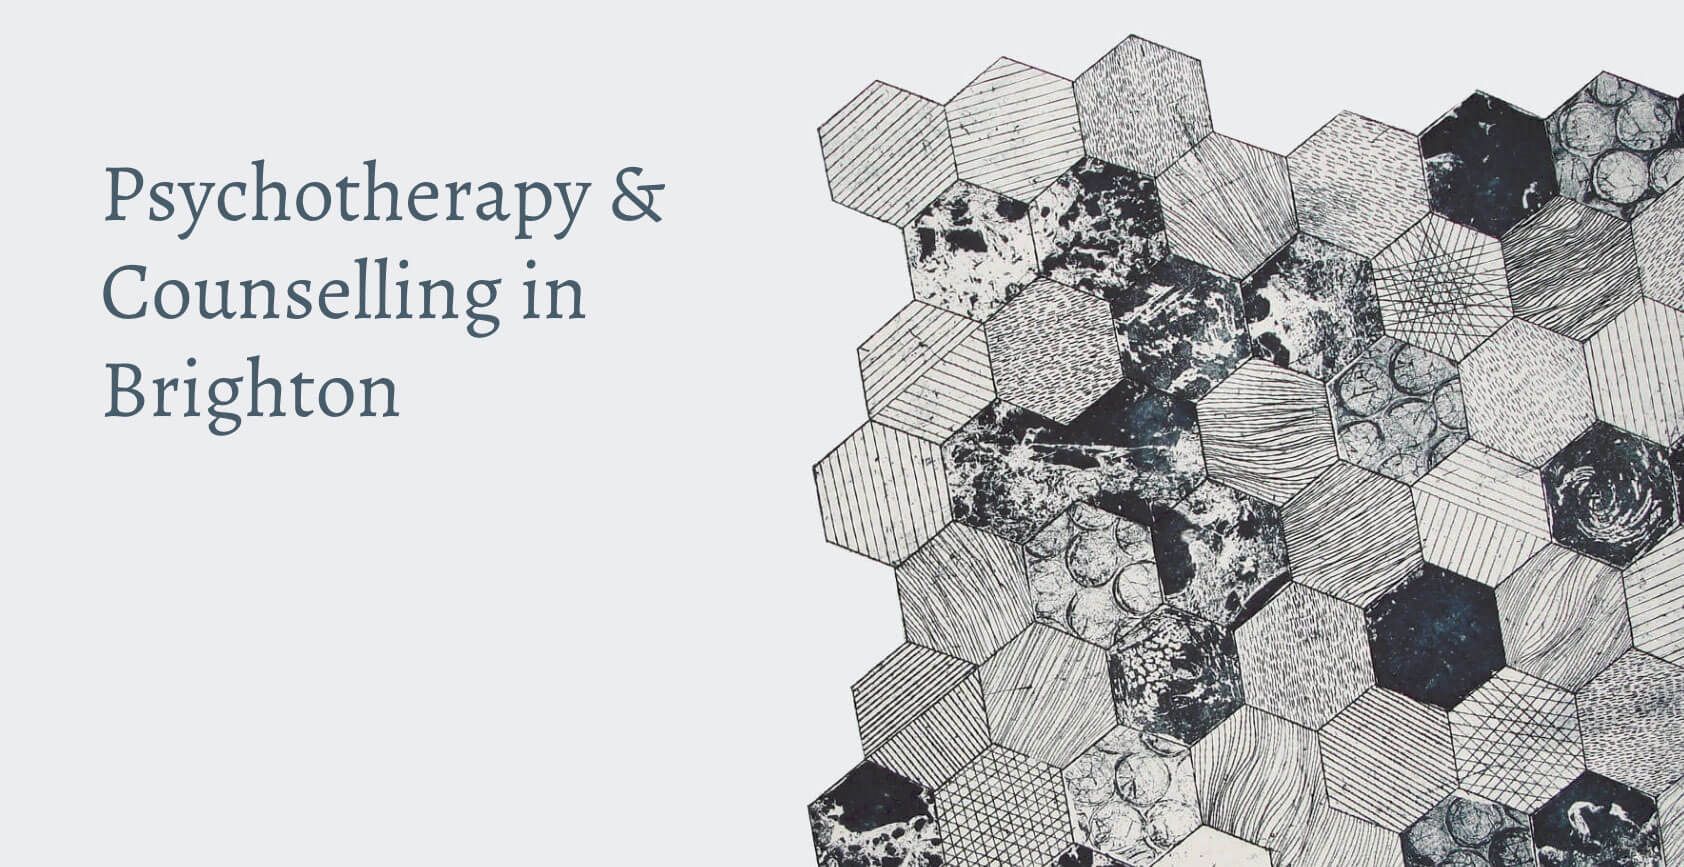 Psychotherapy and counselling clinic in Hove